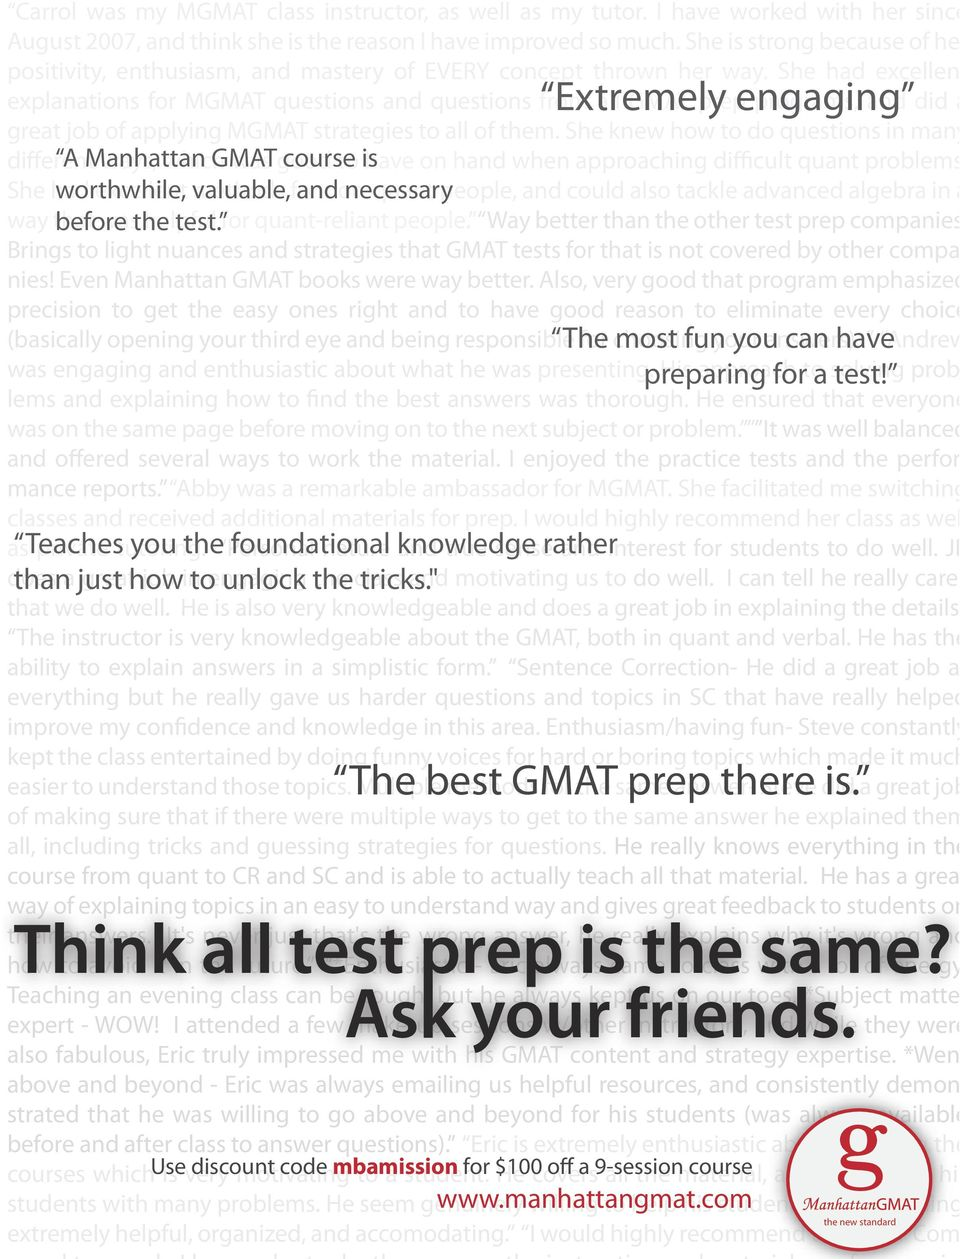 She had excellent explanations for MGMAT questions and questions from Extremely all GMAT prep engaging programs, and did a great job of applying MGMAT strategies to all of them.